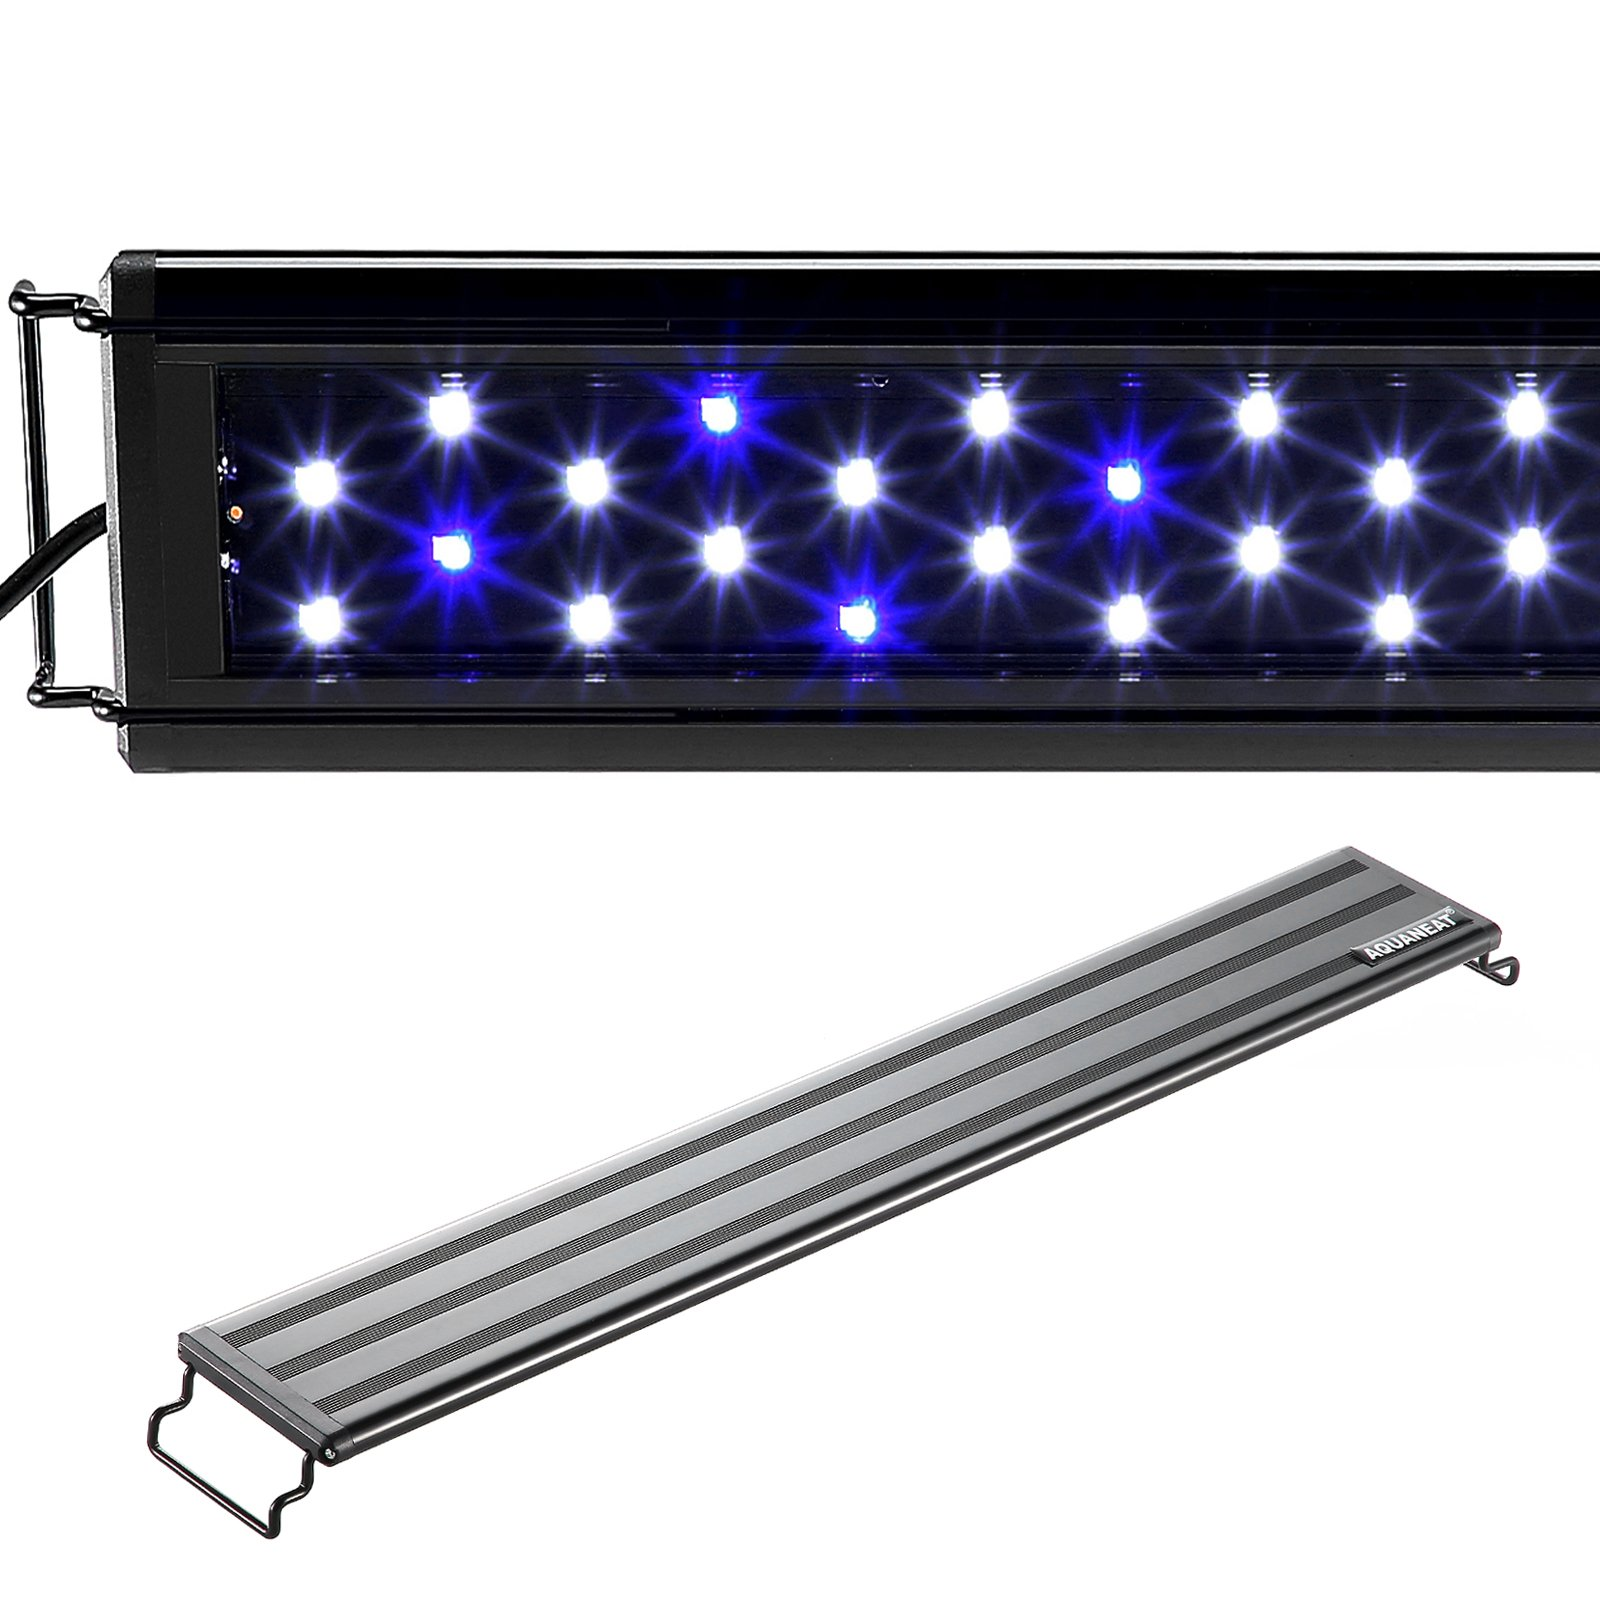 AQUANEAT Aquarium Light White and Blue LED Fresh Water Fish Tank Light for 36 to 44 Inch Tank by Aquaneat